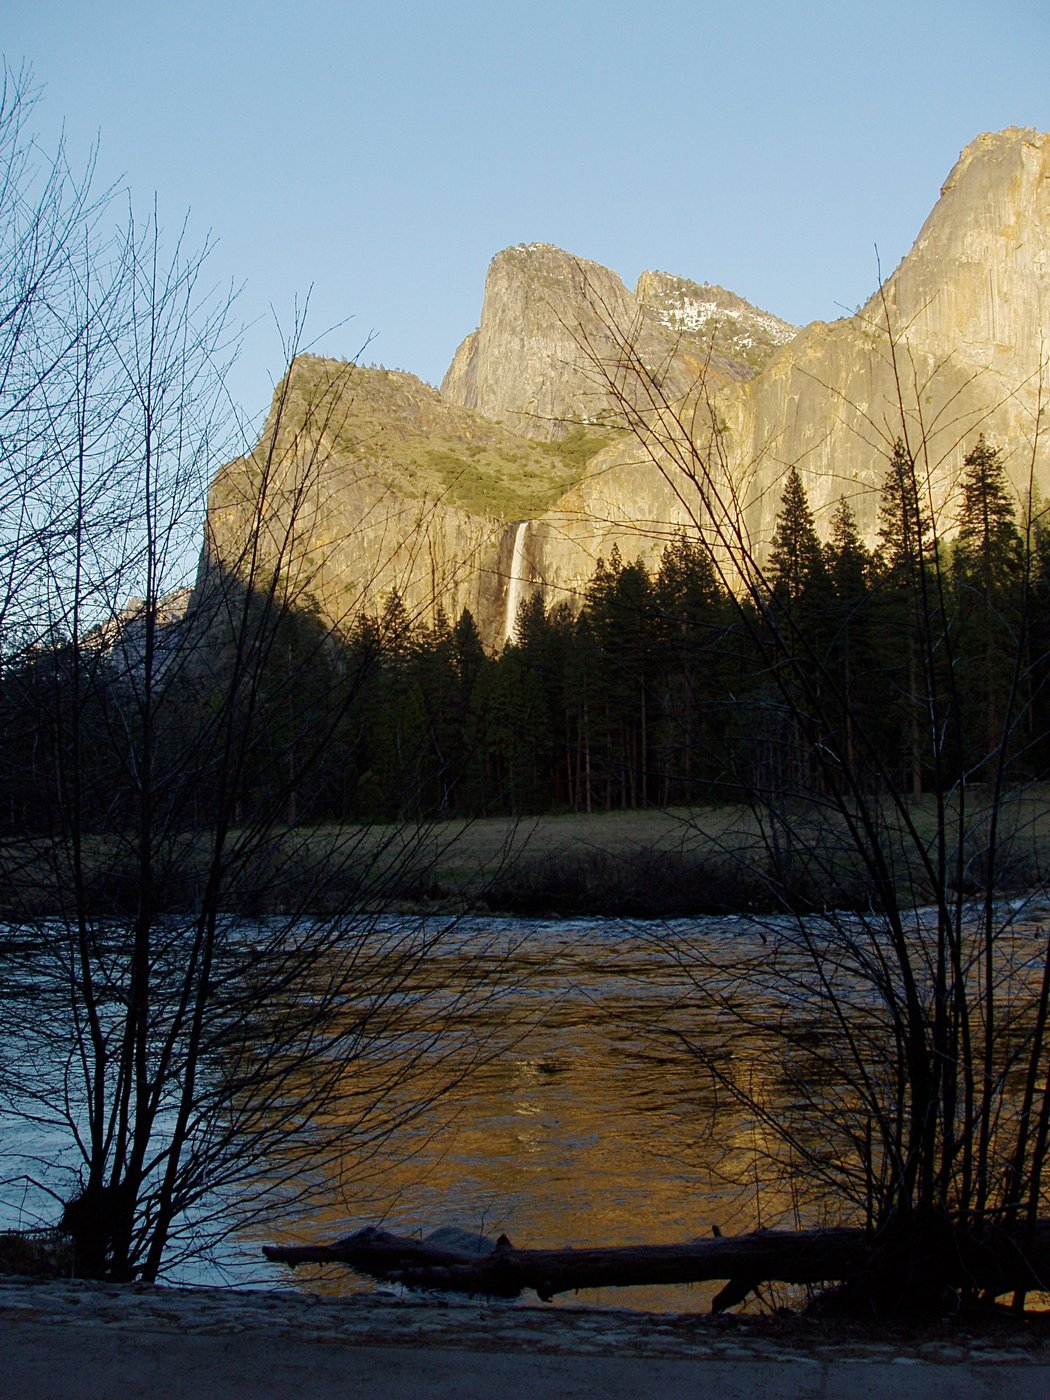 End of the Day: Merced River and Bridalveil Fall